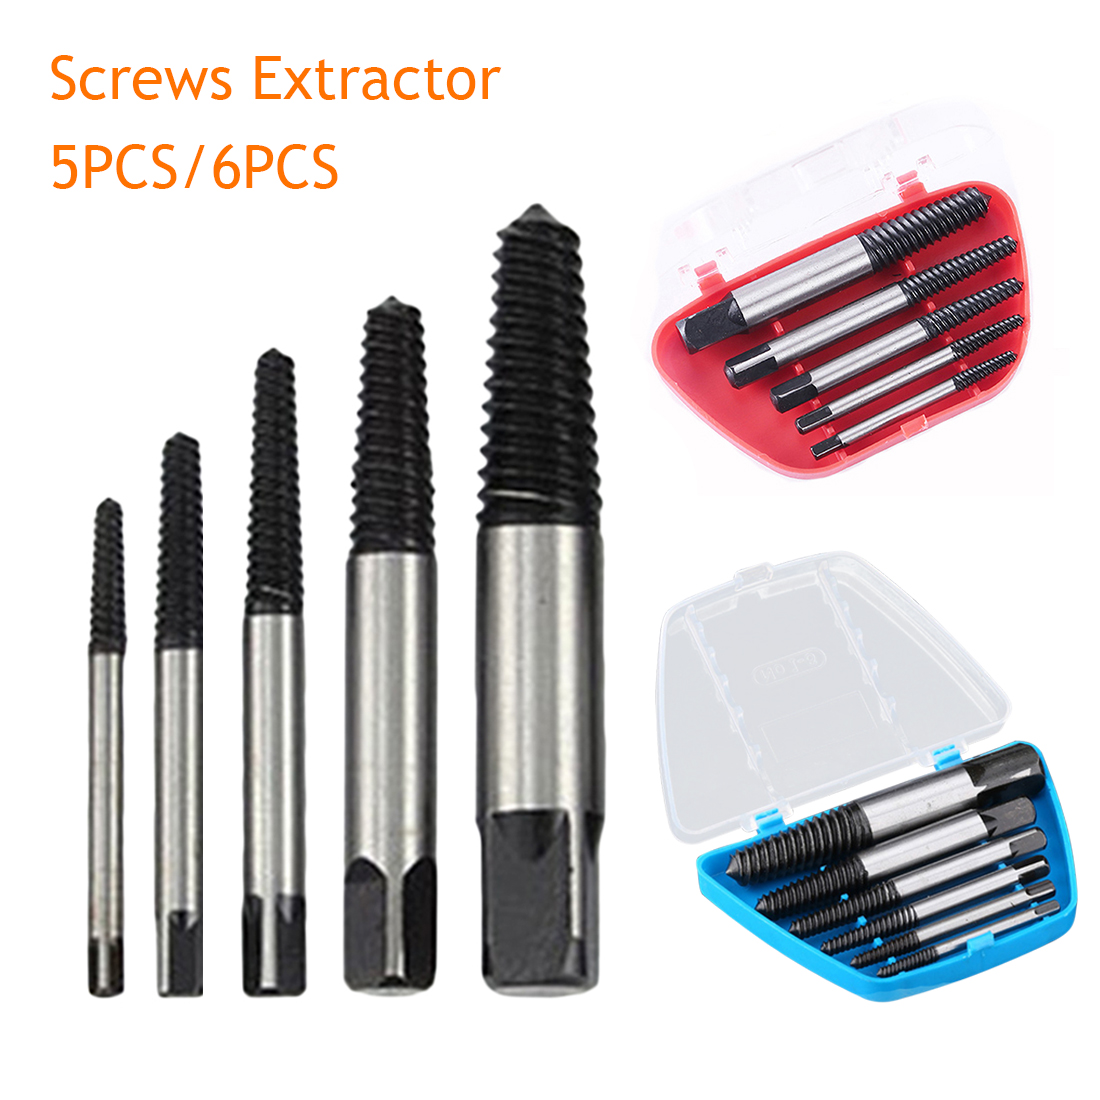 5pcs/6pcs Screw Extractors Damaged Broken Screws Removal Tool Used In Removing The Damaged Bolts Drill Bits With Case